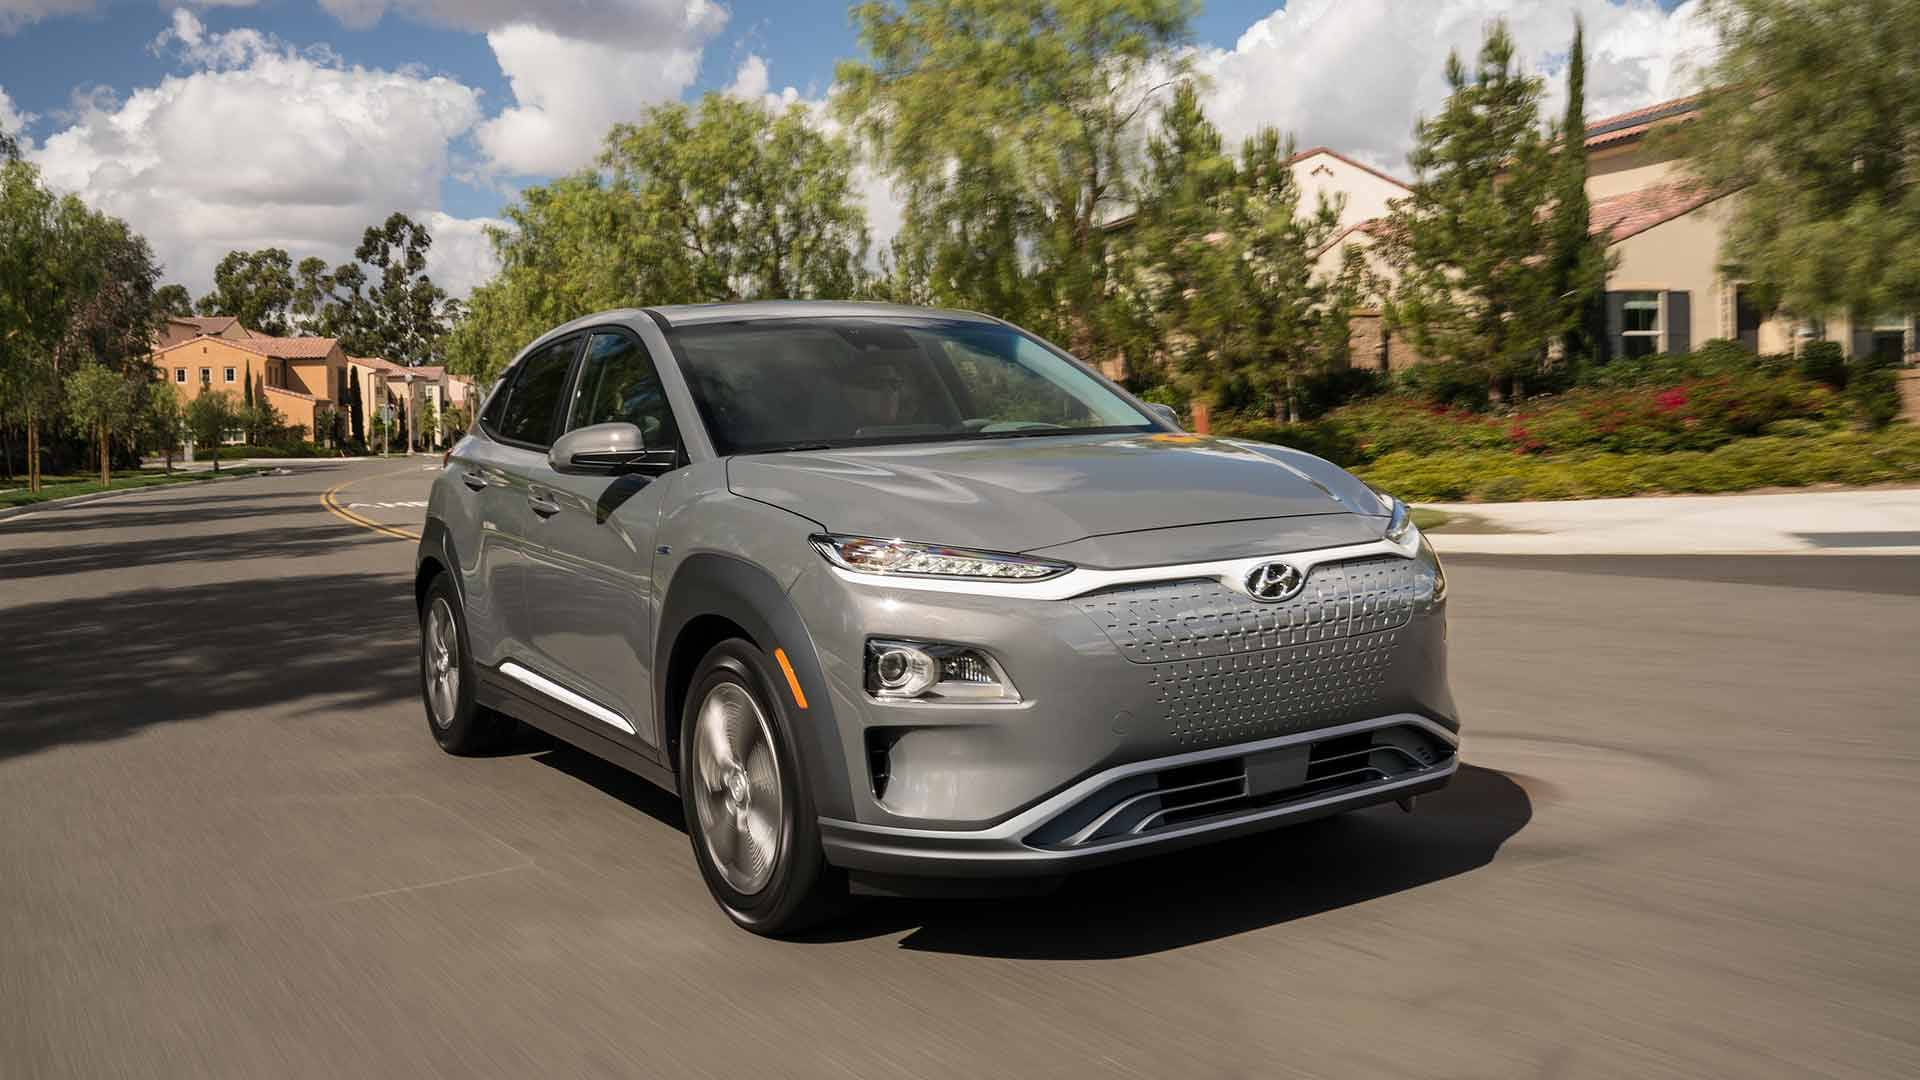 Hyundai Kona Electric Owners Five Gest Dislikes